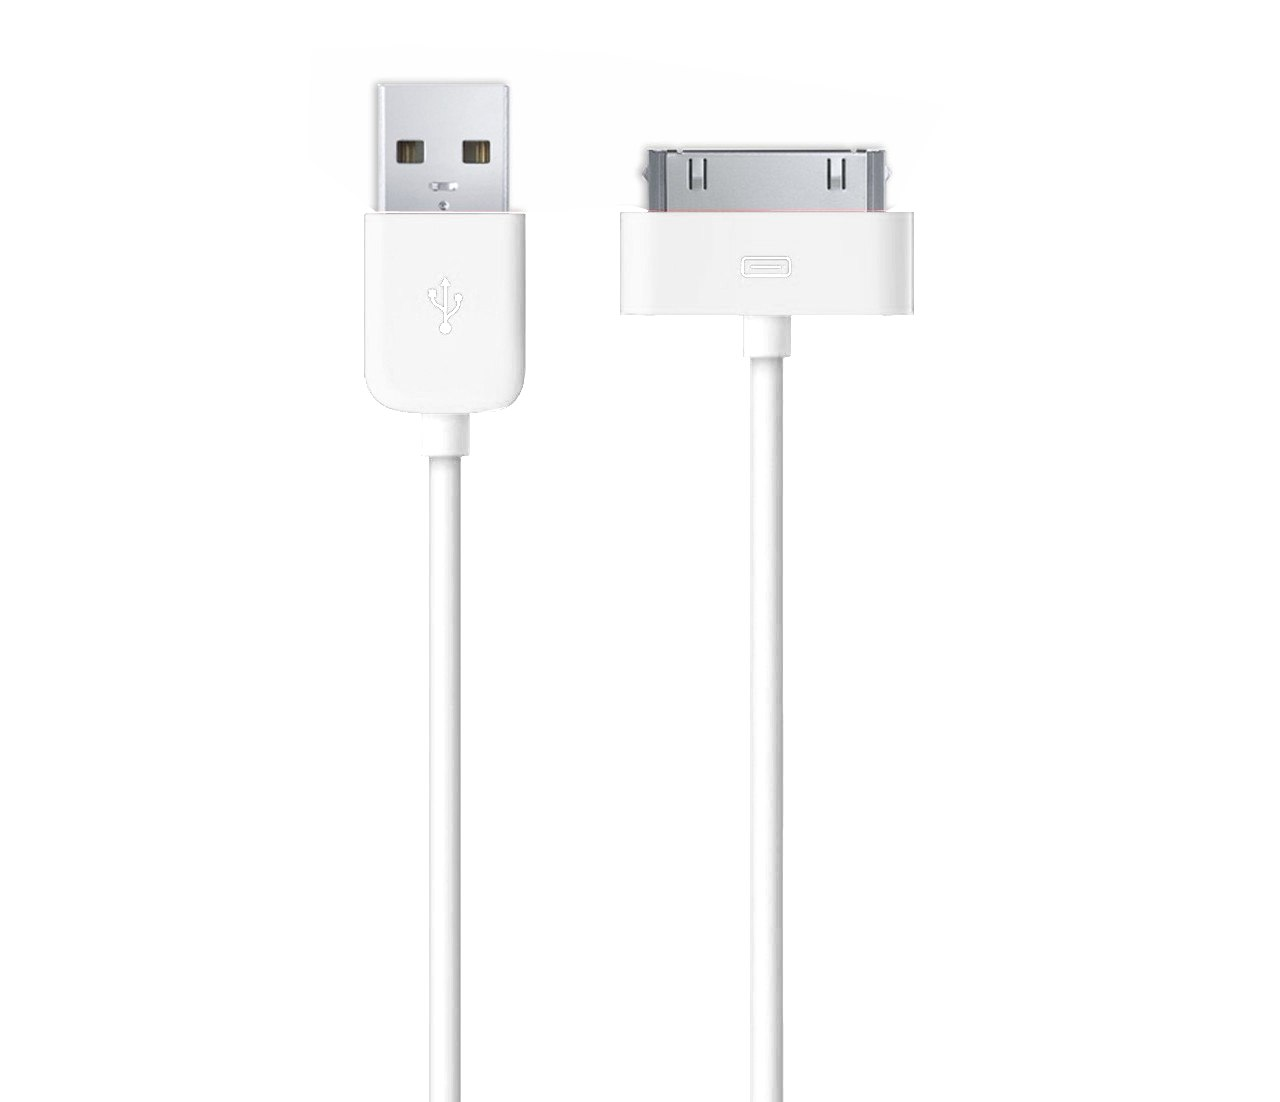 nabijeci usb kabel pro iphone 4 a 4S